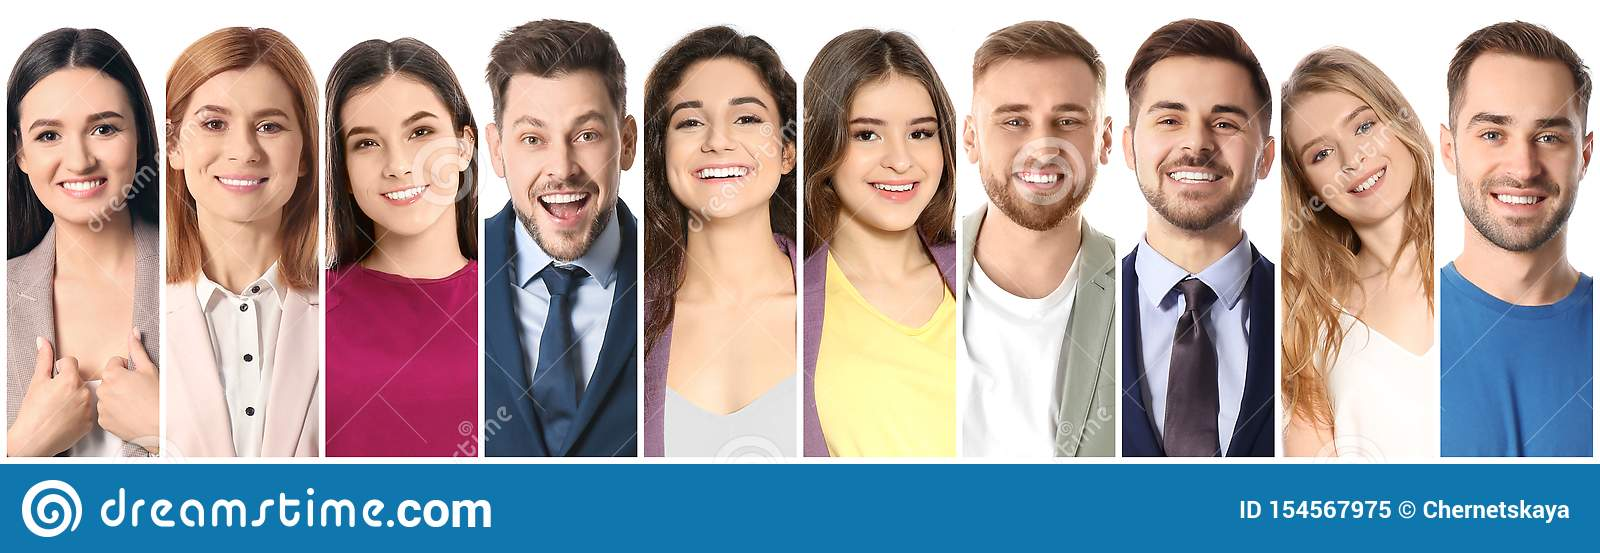 Collage of smiling people on white background